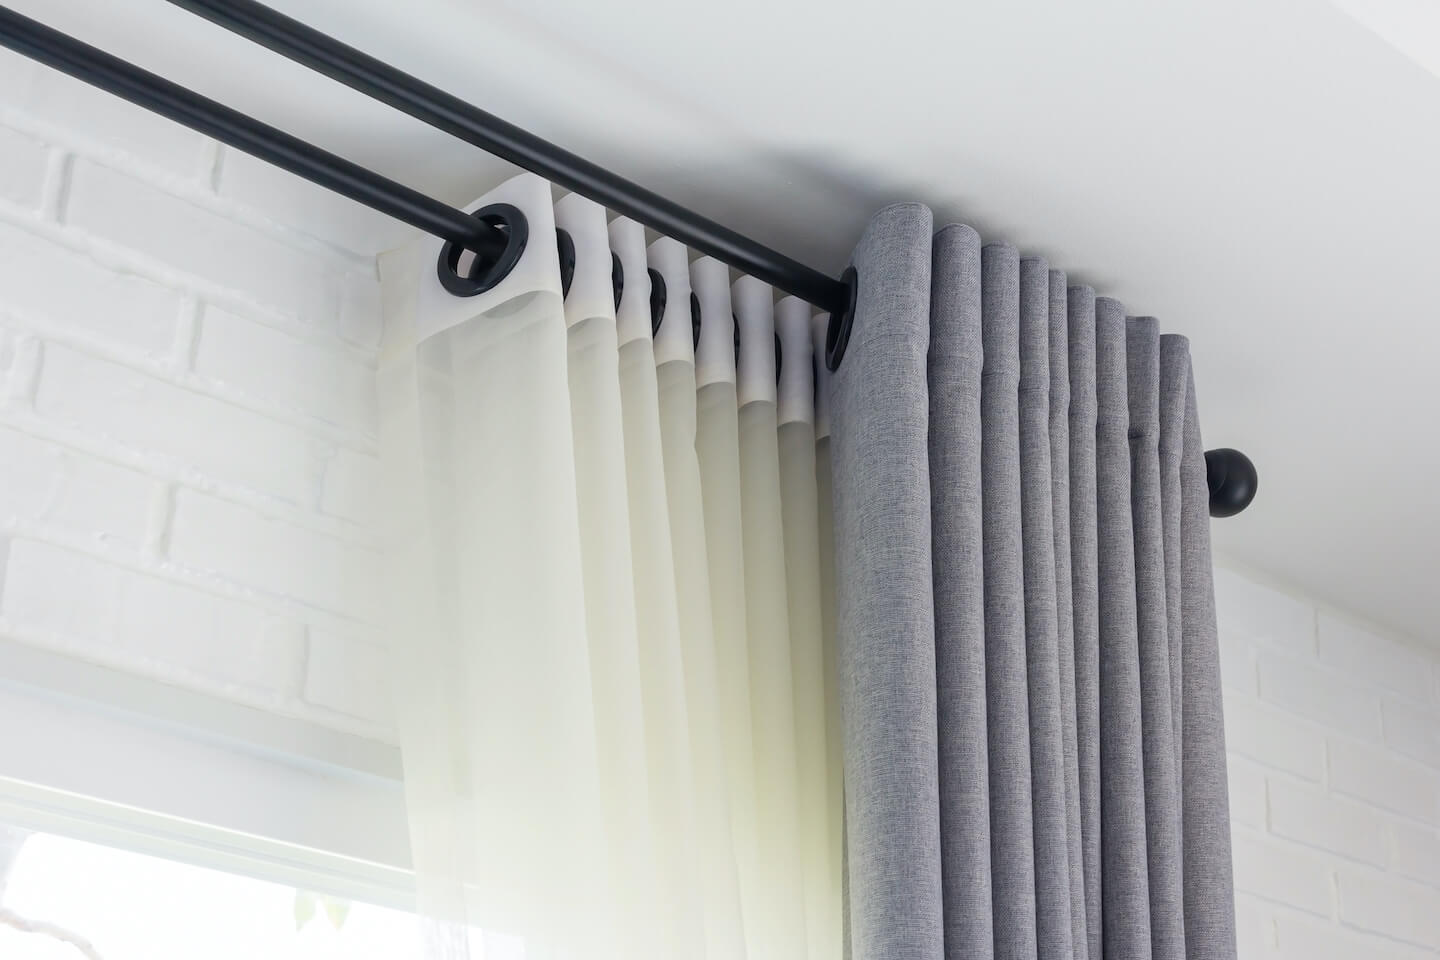 Curtain Cleaning